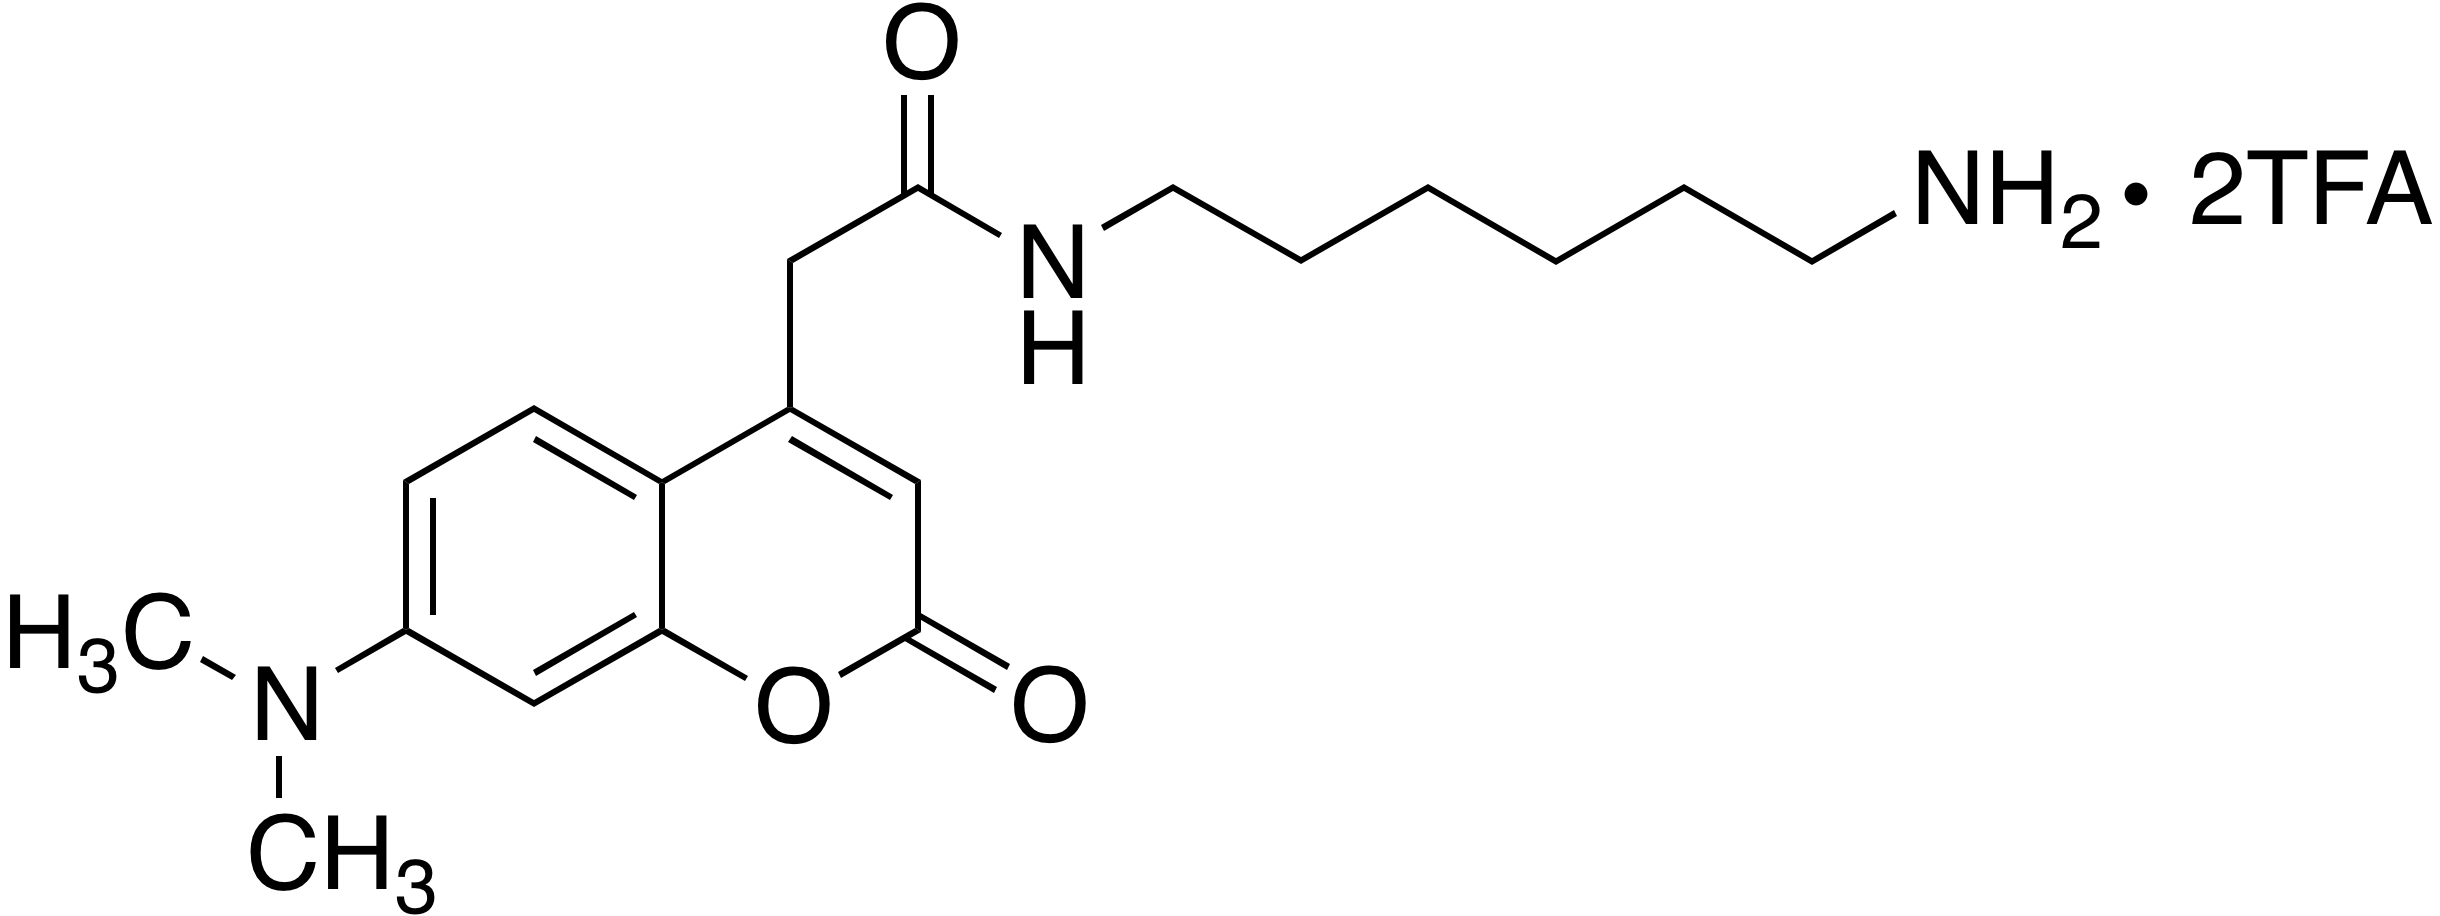 N-(6-Aminohexyl)-7-dimethylaminocoumarin-4-acetamide trifluoroacetate (1:2)